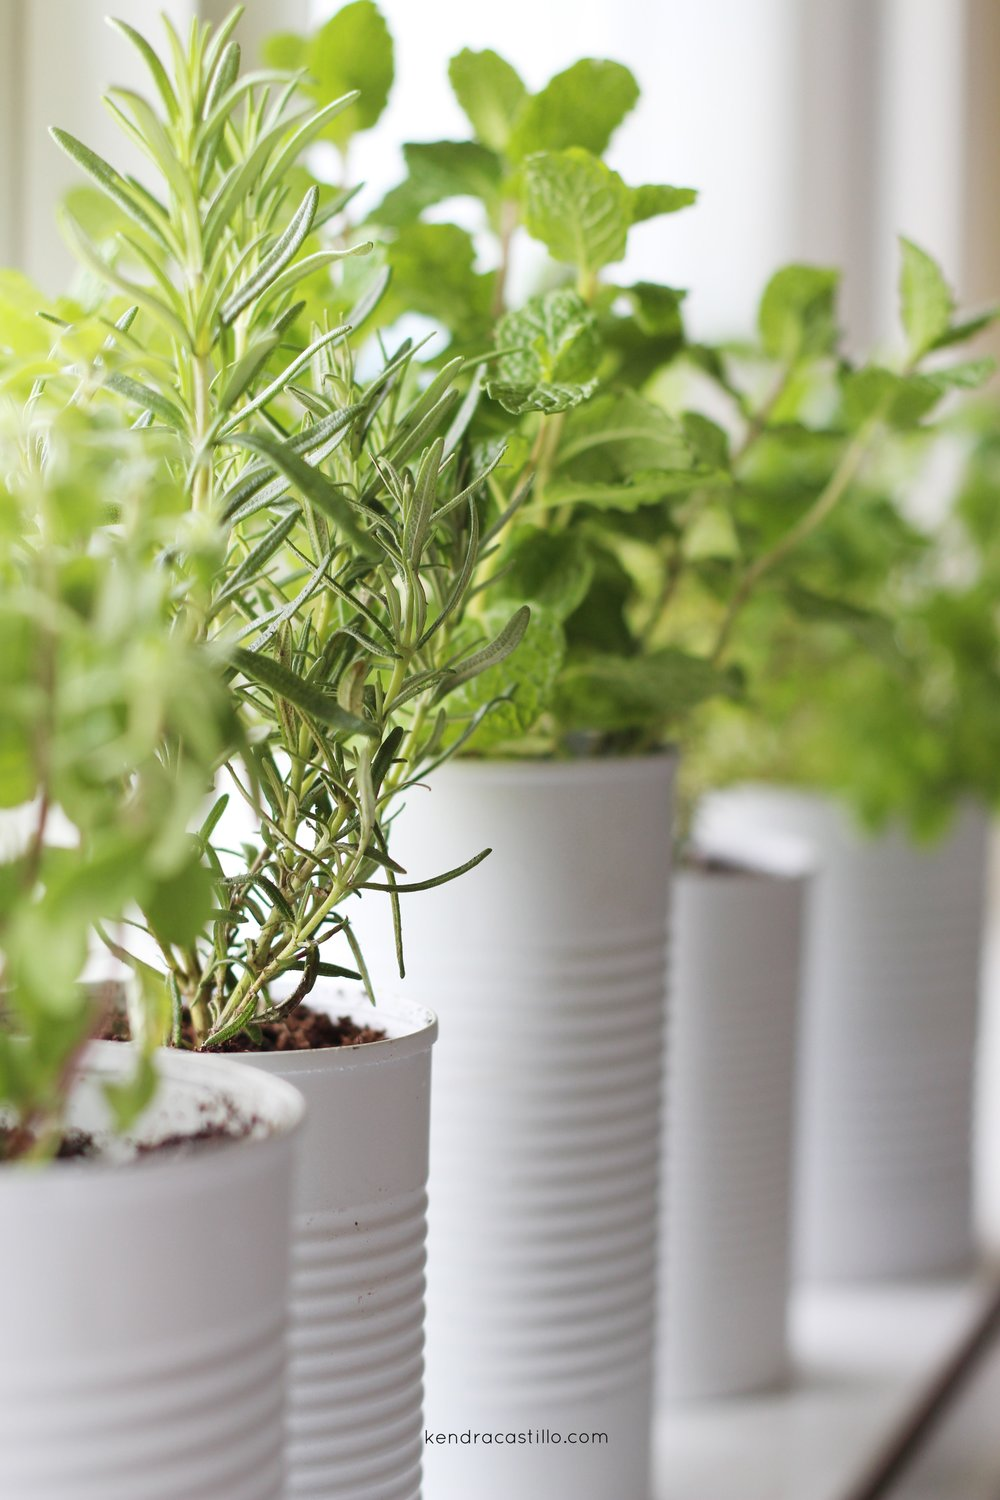 Window Sill Herb Garden for you Kitchen or small spaces | Kendra Castillo